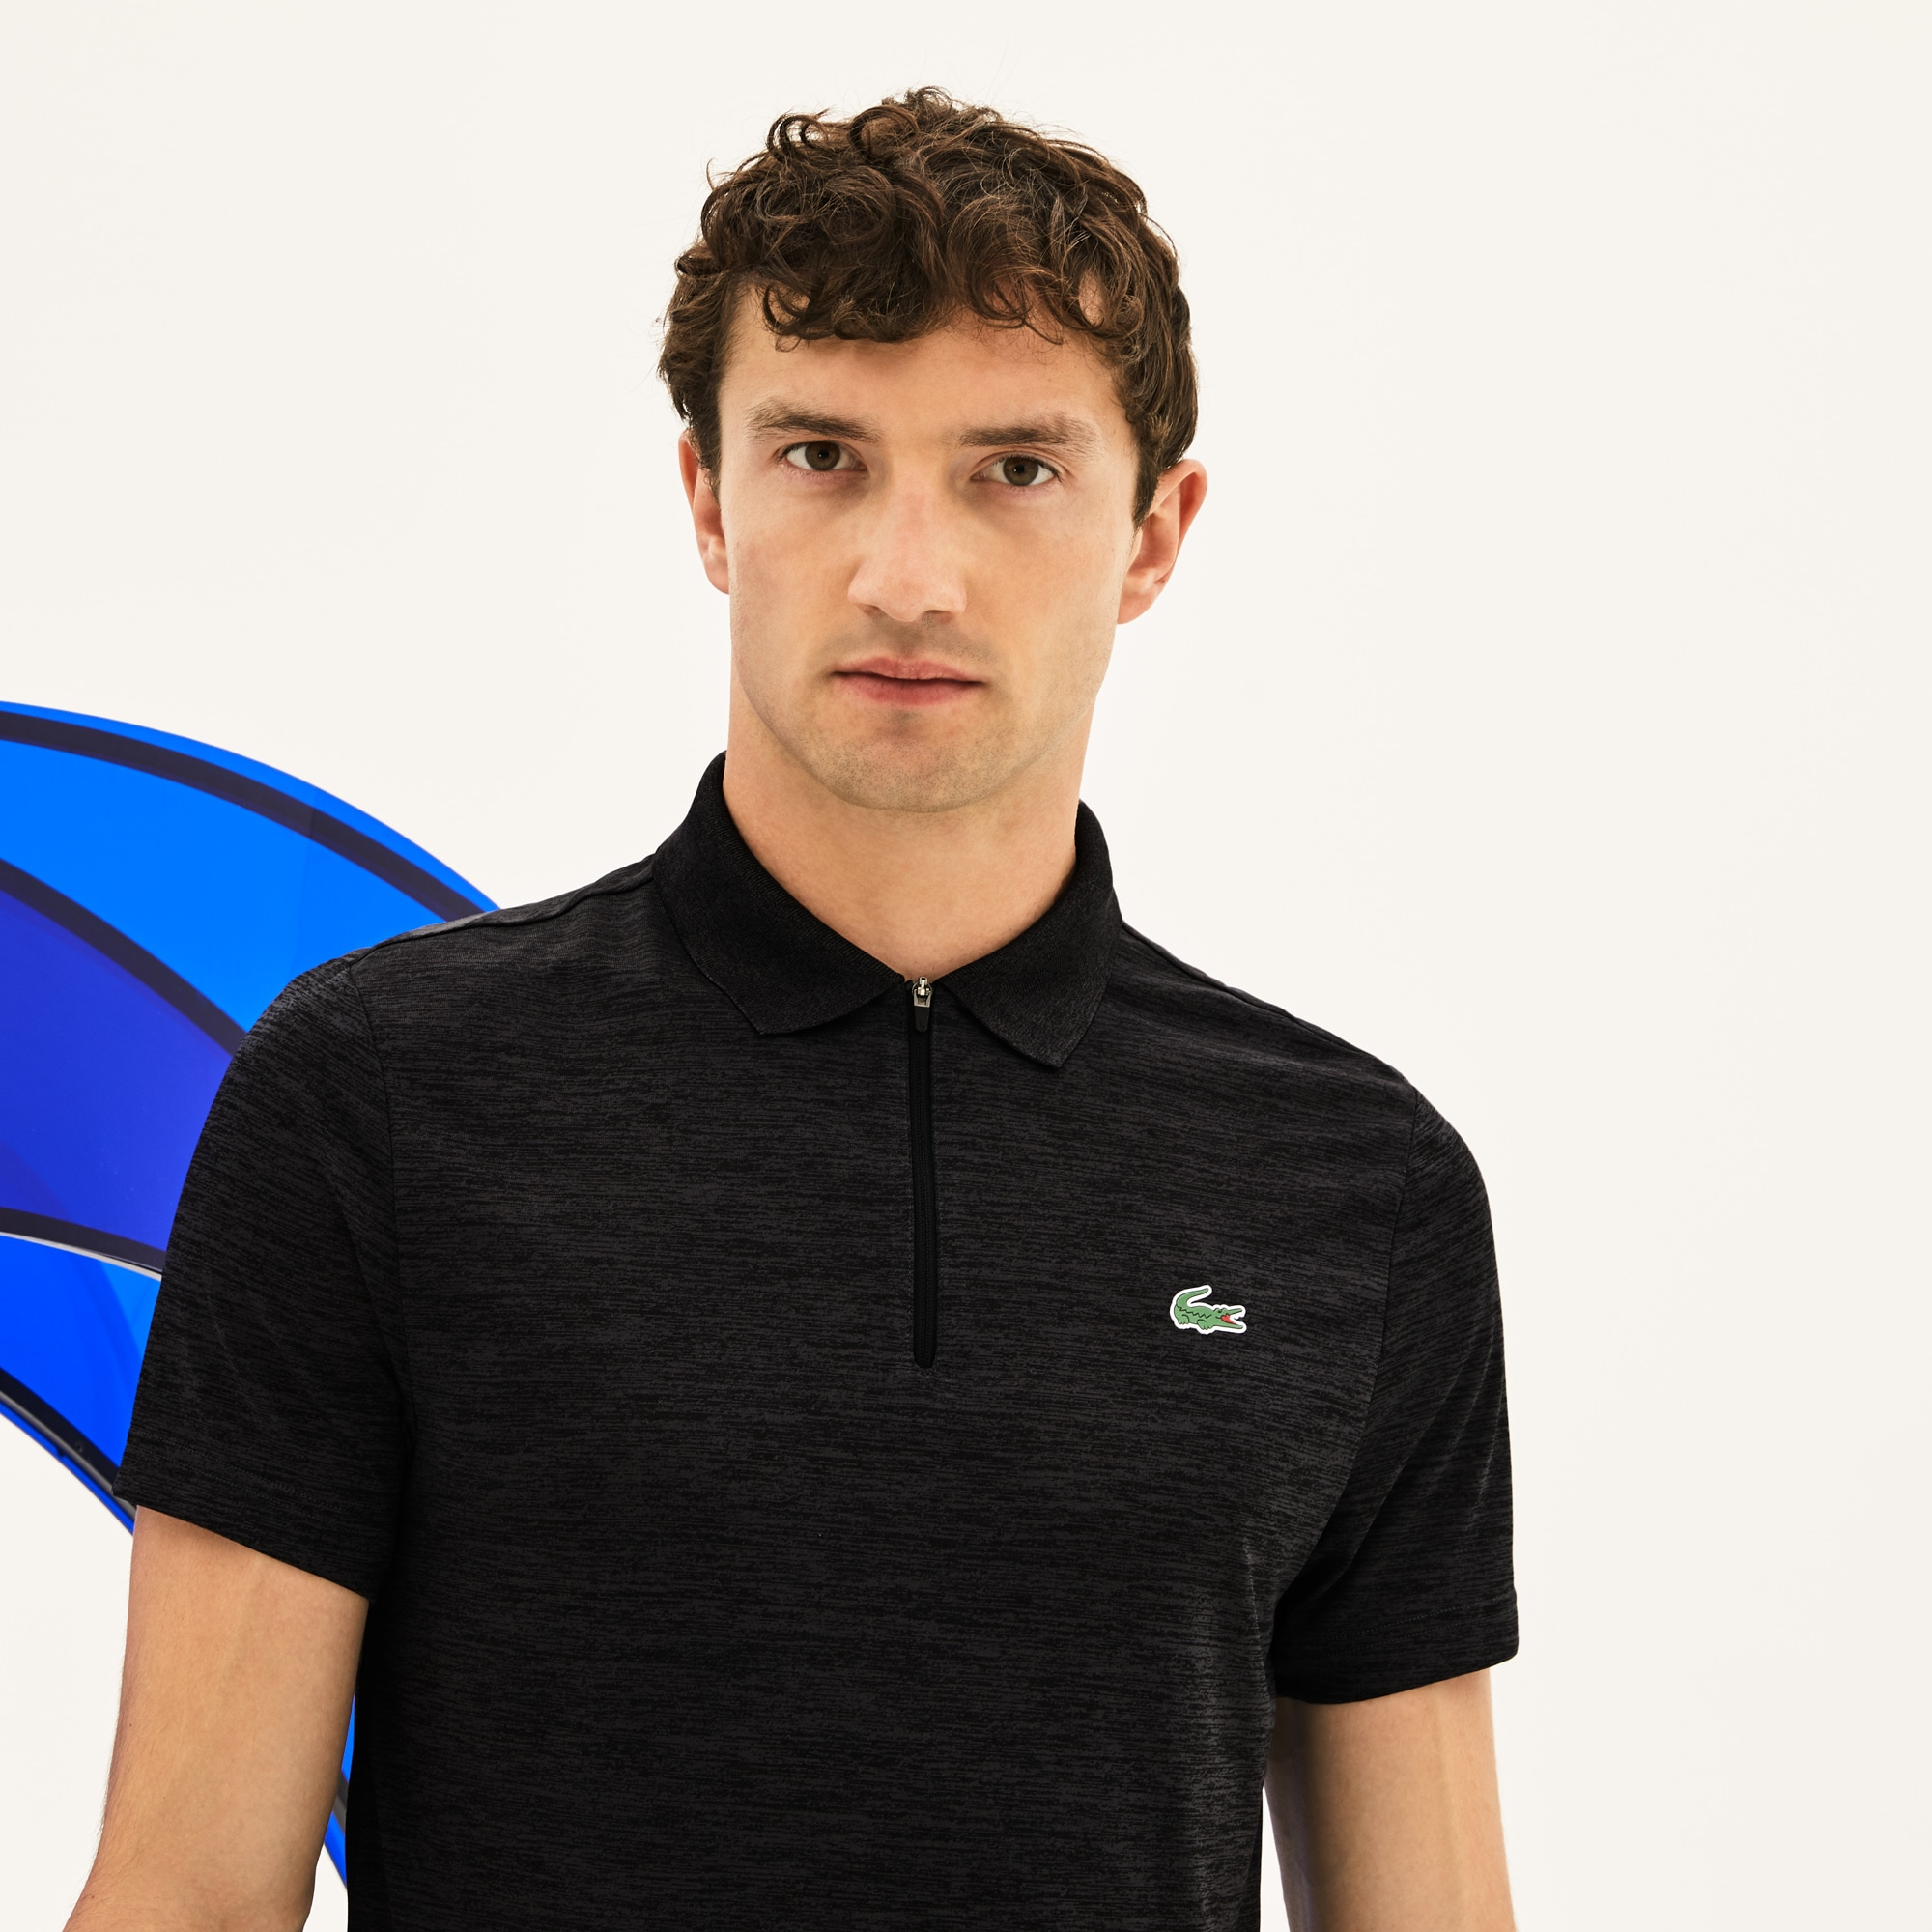 Polo Lacoste SPORT Collection Novak Djokovic - Off Court en jersey technique chiné